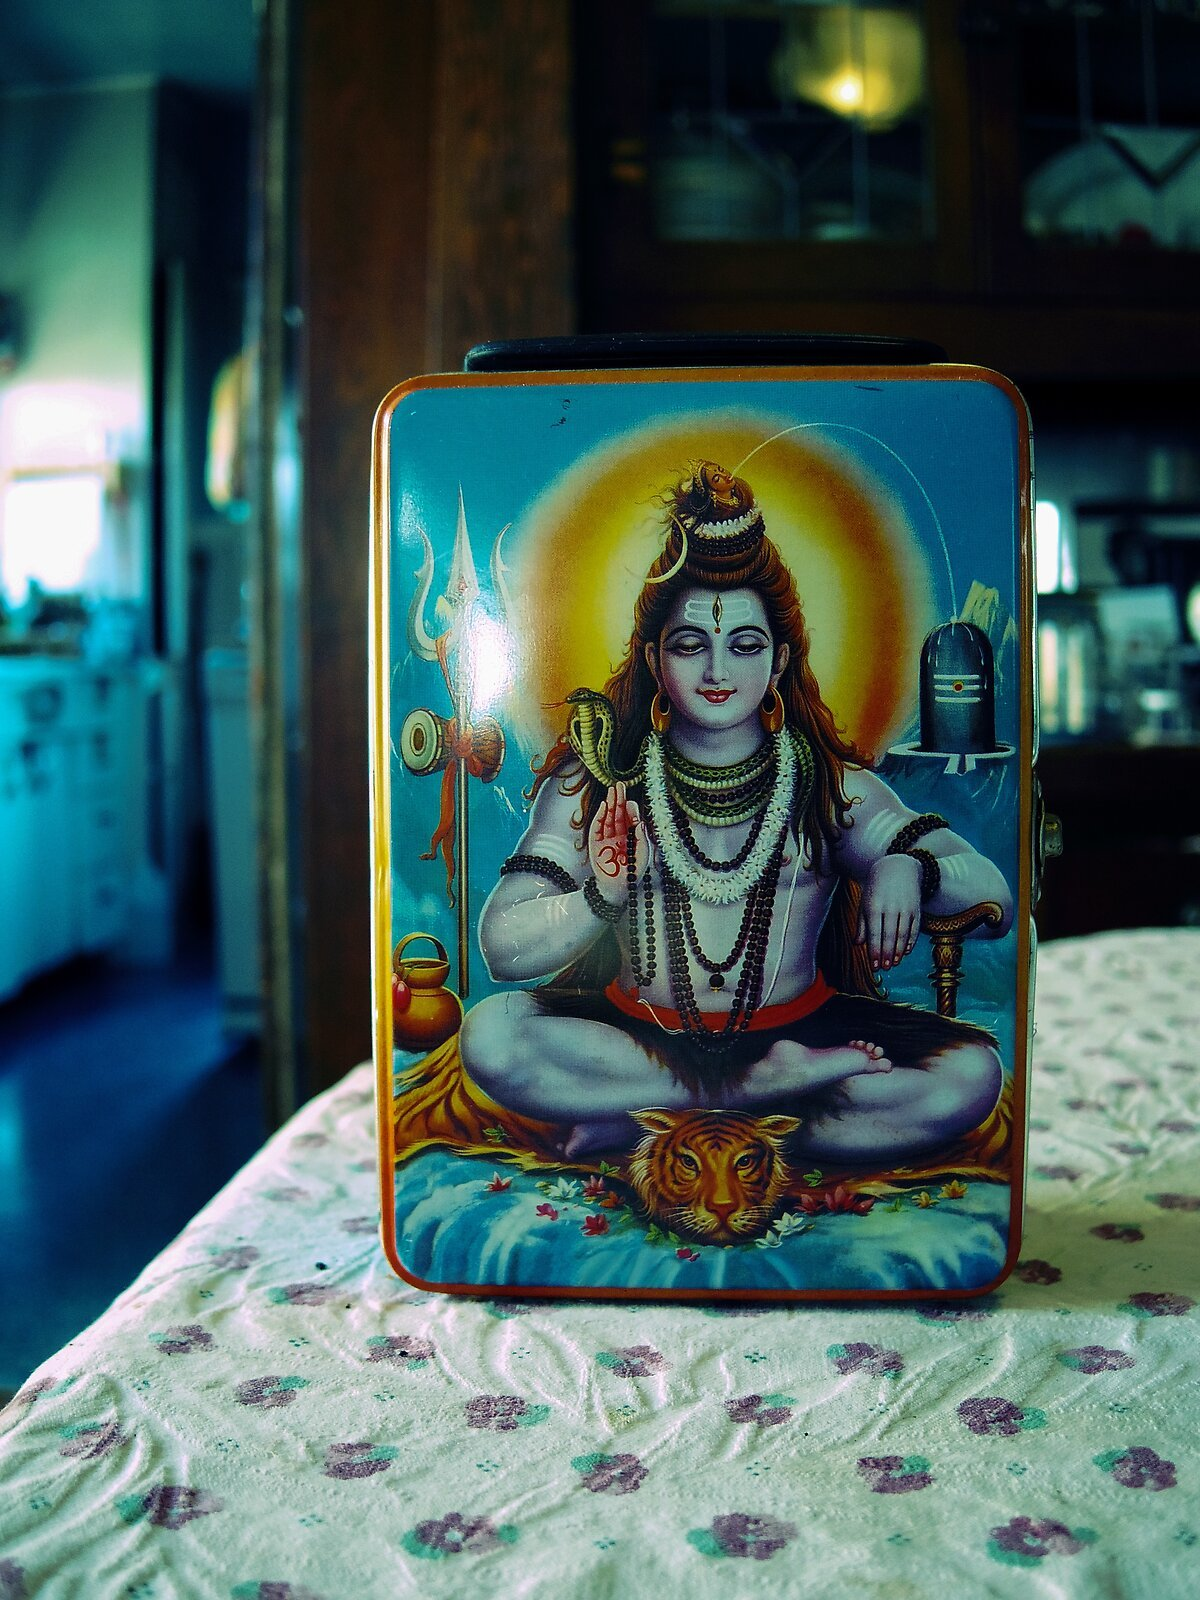 Q7_Mar6_21_Shiva_lunchbox(XP).jpg